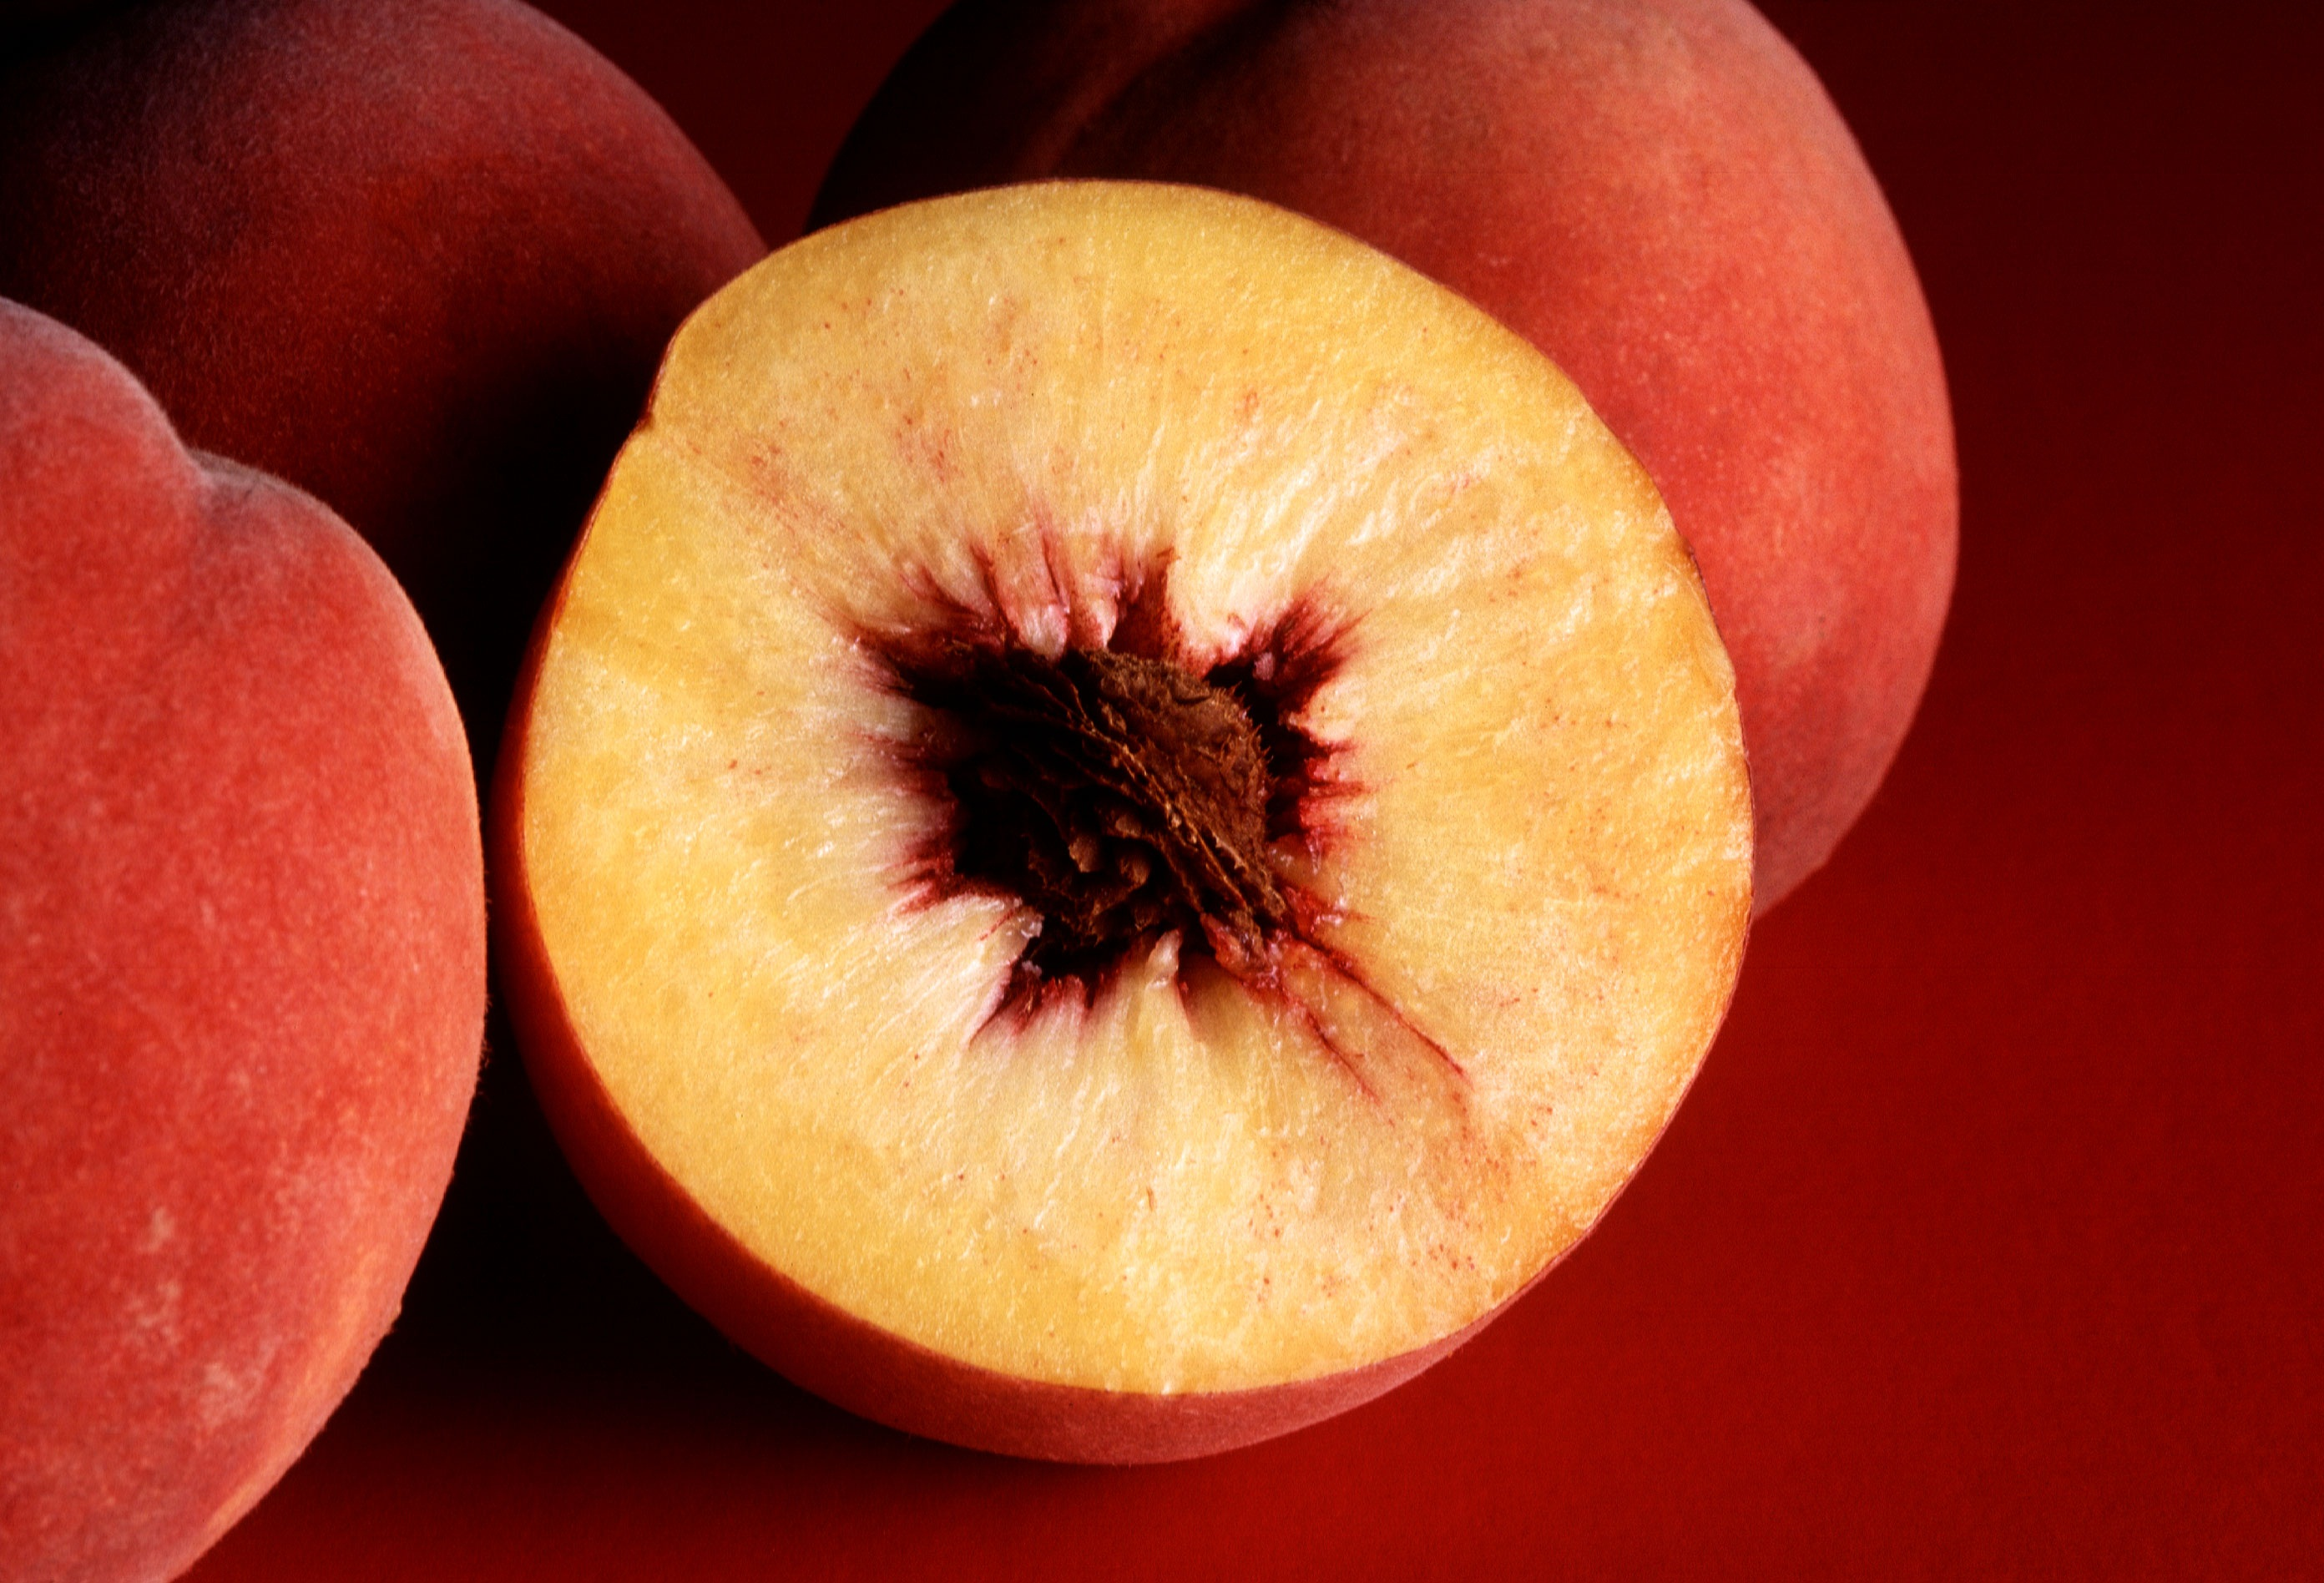 Peaches ripen with time, just as healing after grief lets life feel sweet again